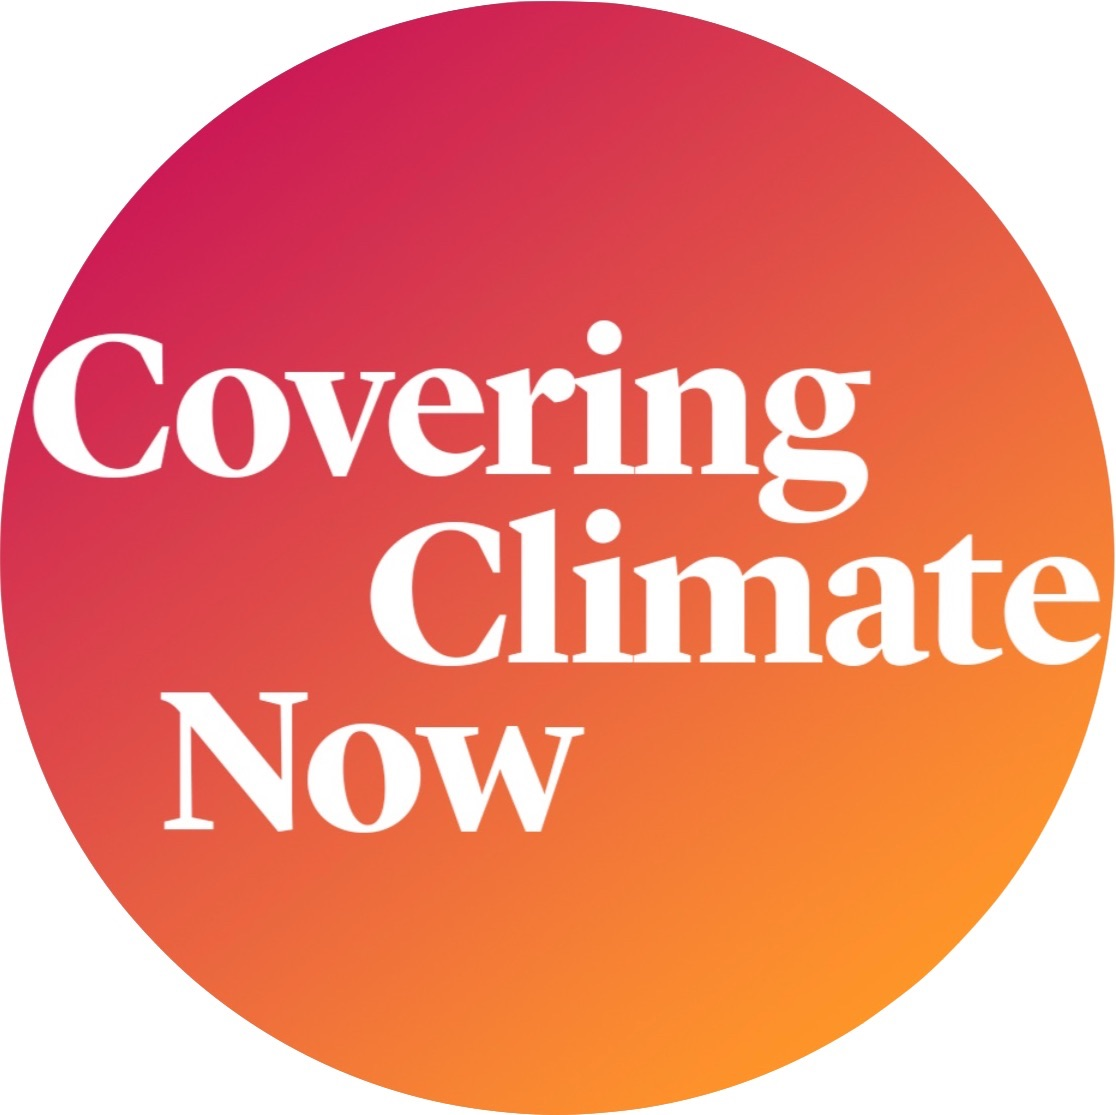 This story has been posted as part of the Covering Climate Now campaign.